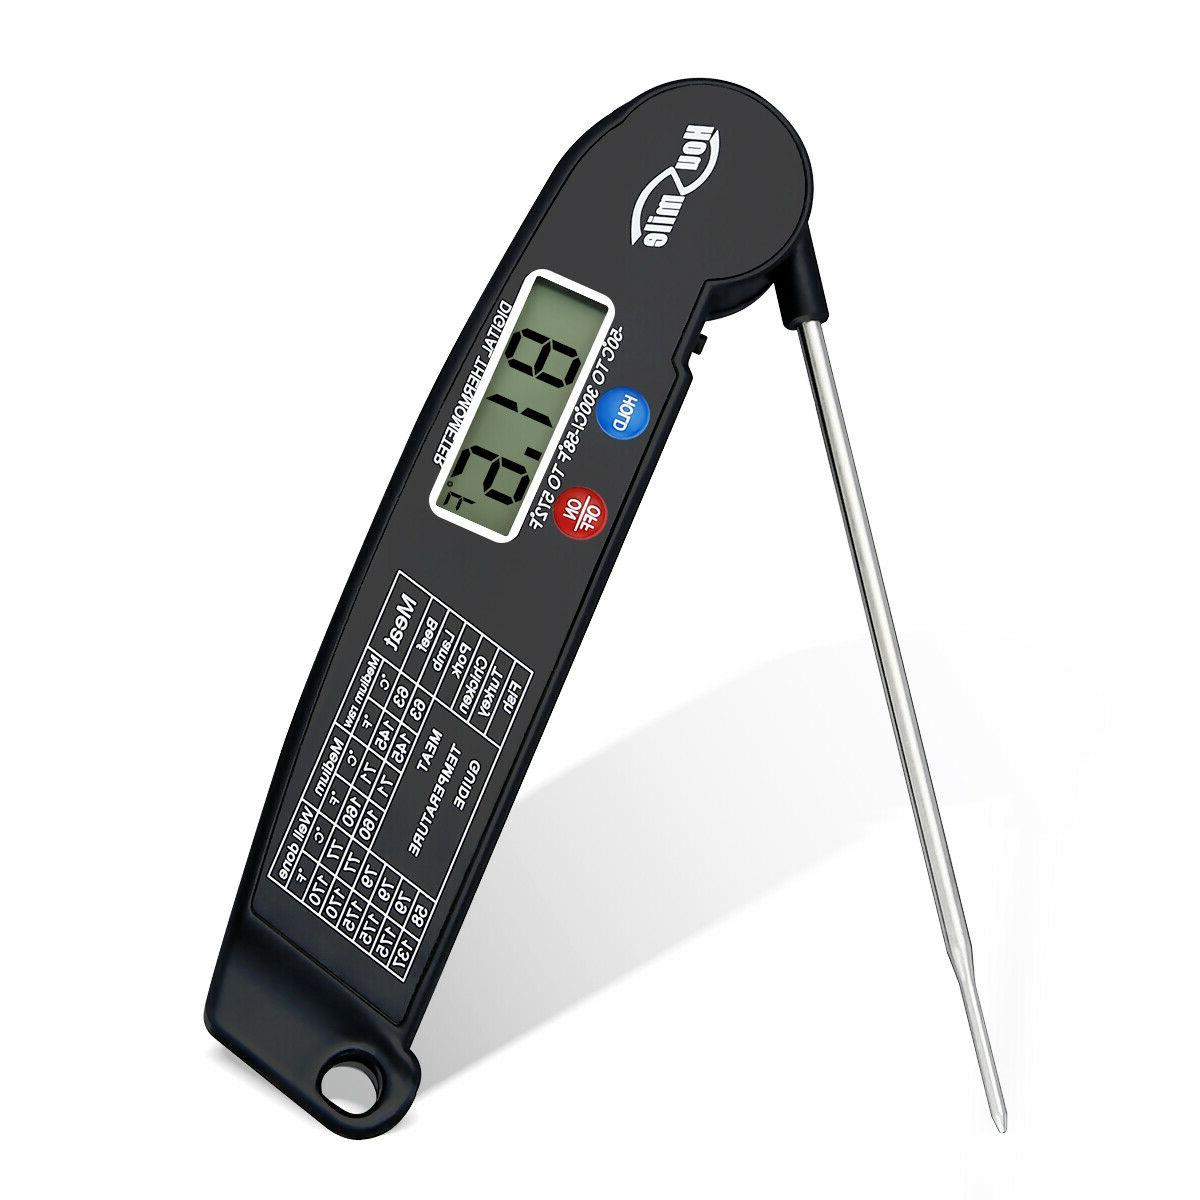 Digital Probe Kitchen Cooking Grill Measure Tool